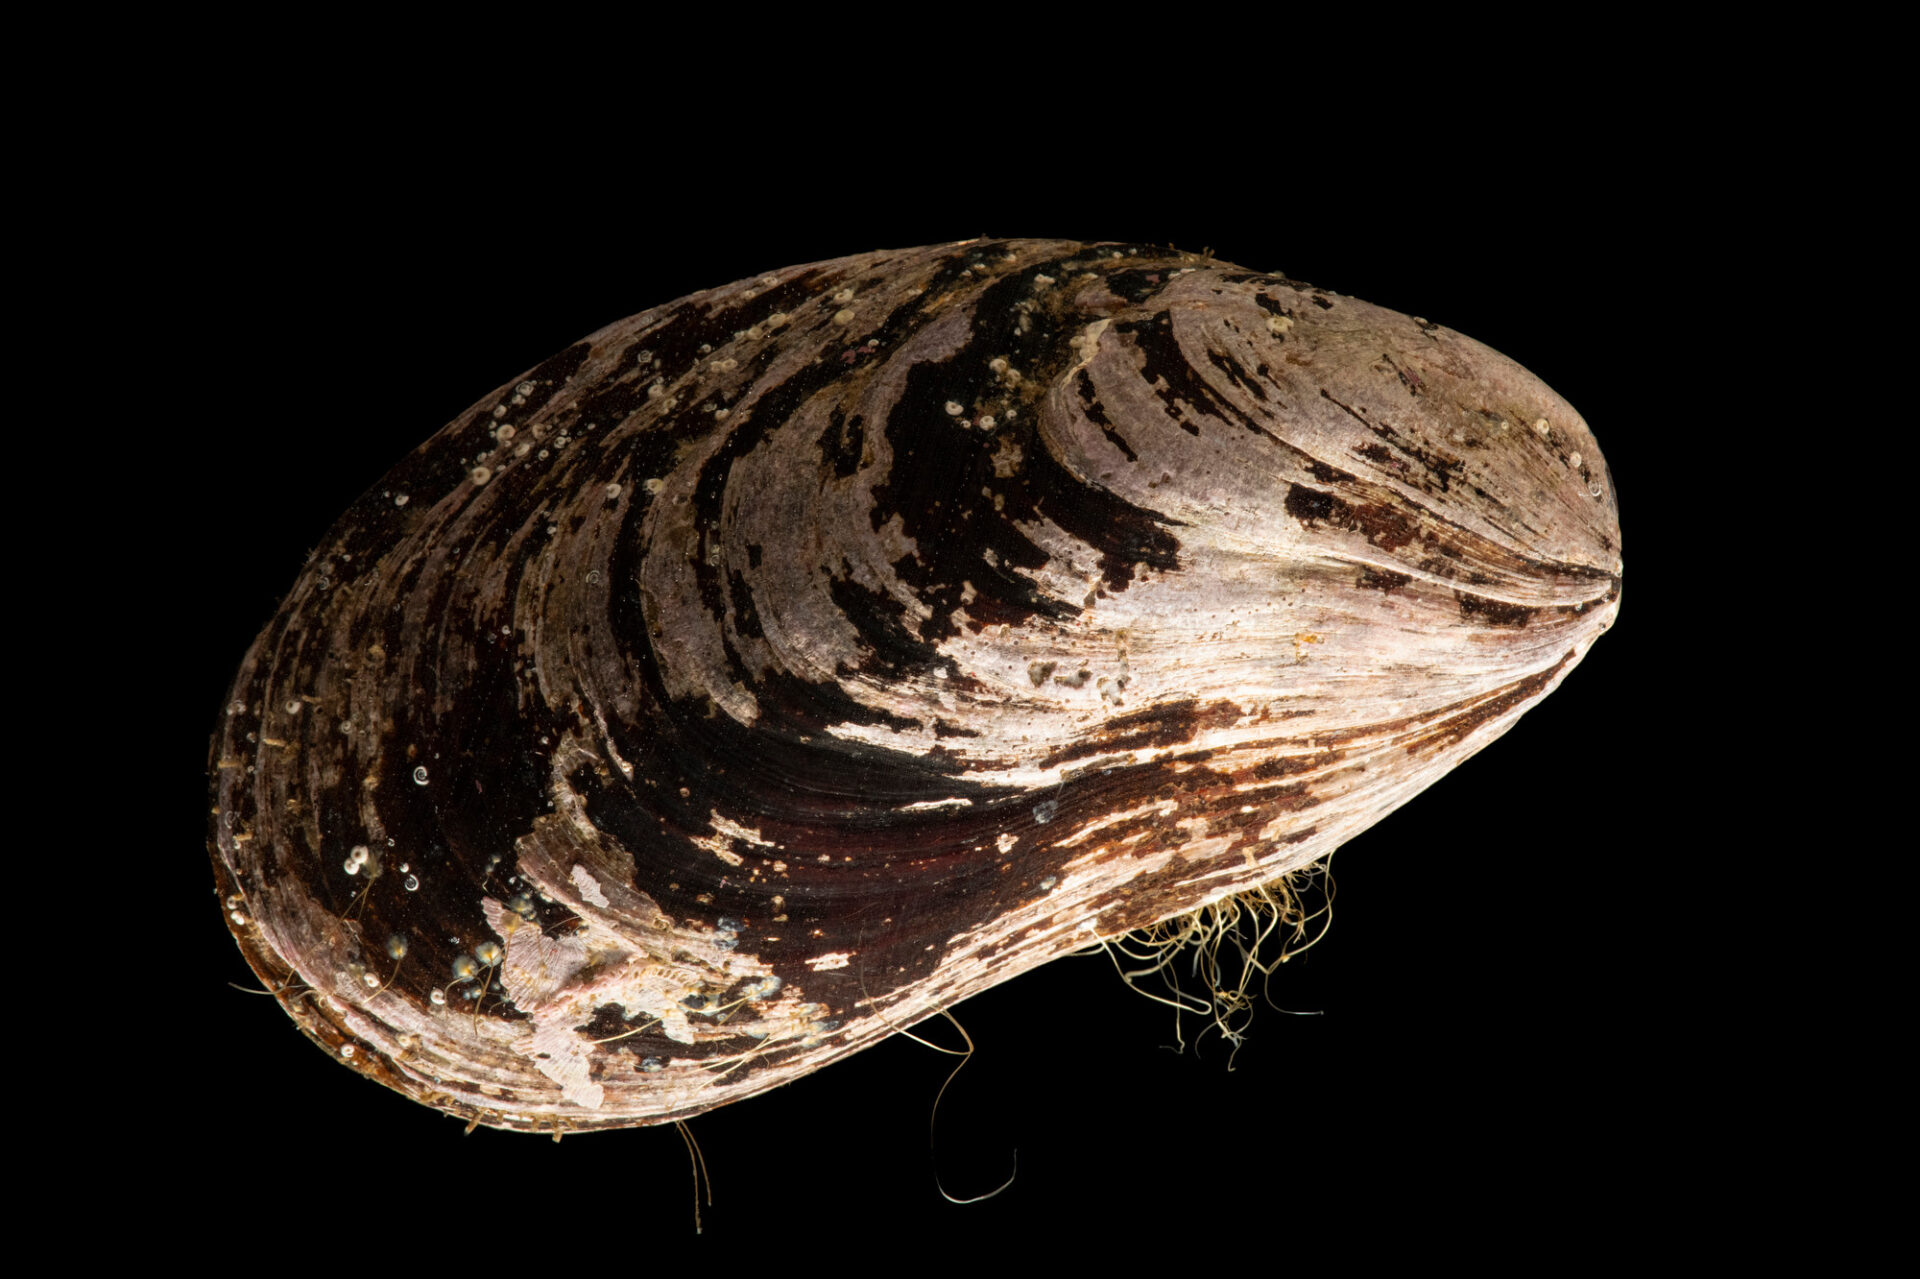 Photo: A northern horse mussel (Modiolus modiolus) at the Maine State Aquarium in West Boothbay, ME.